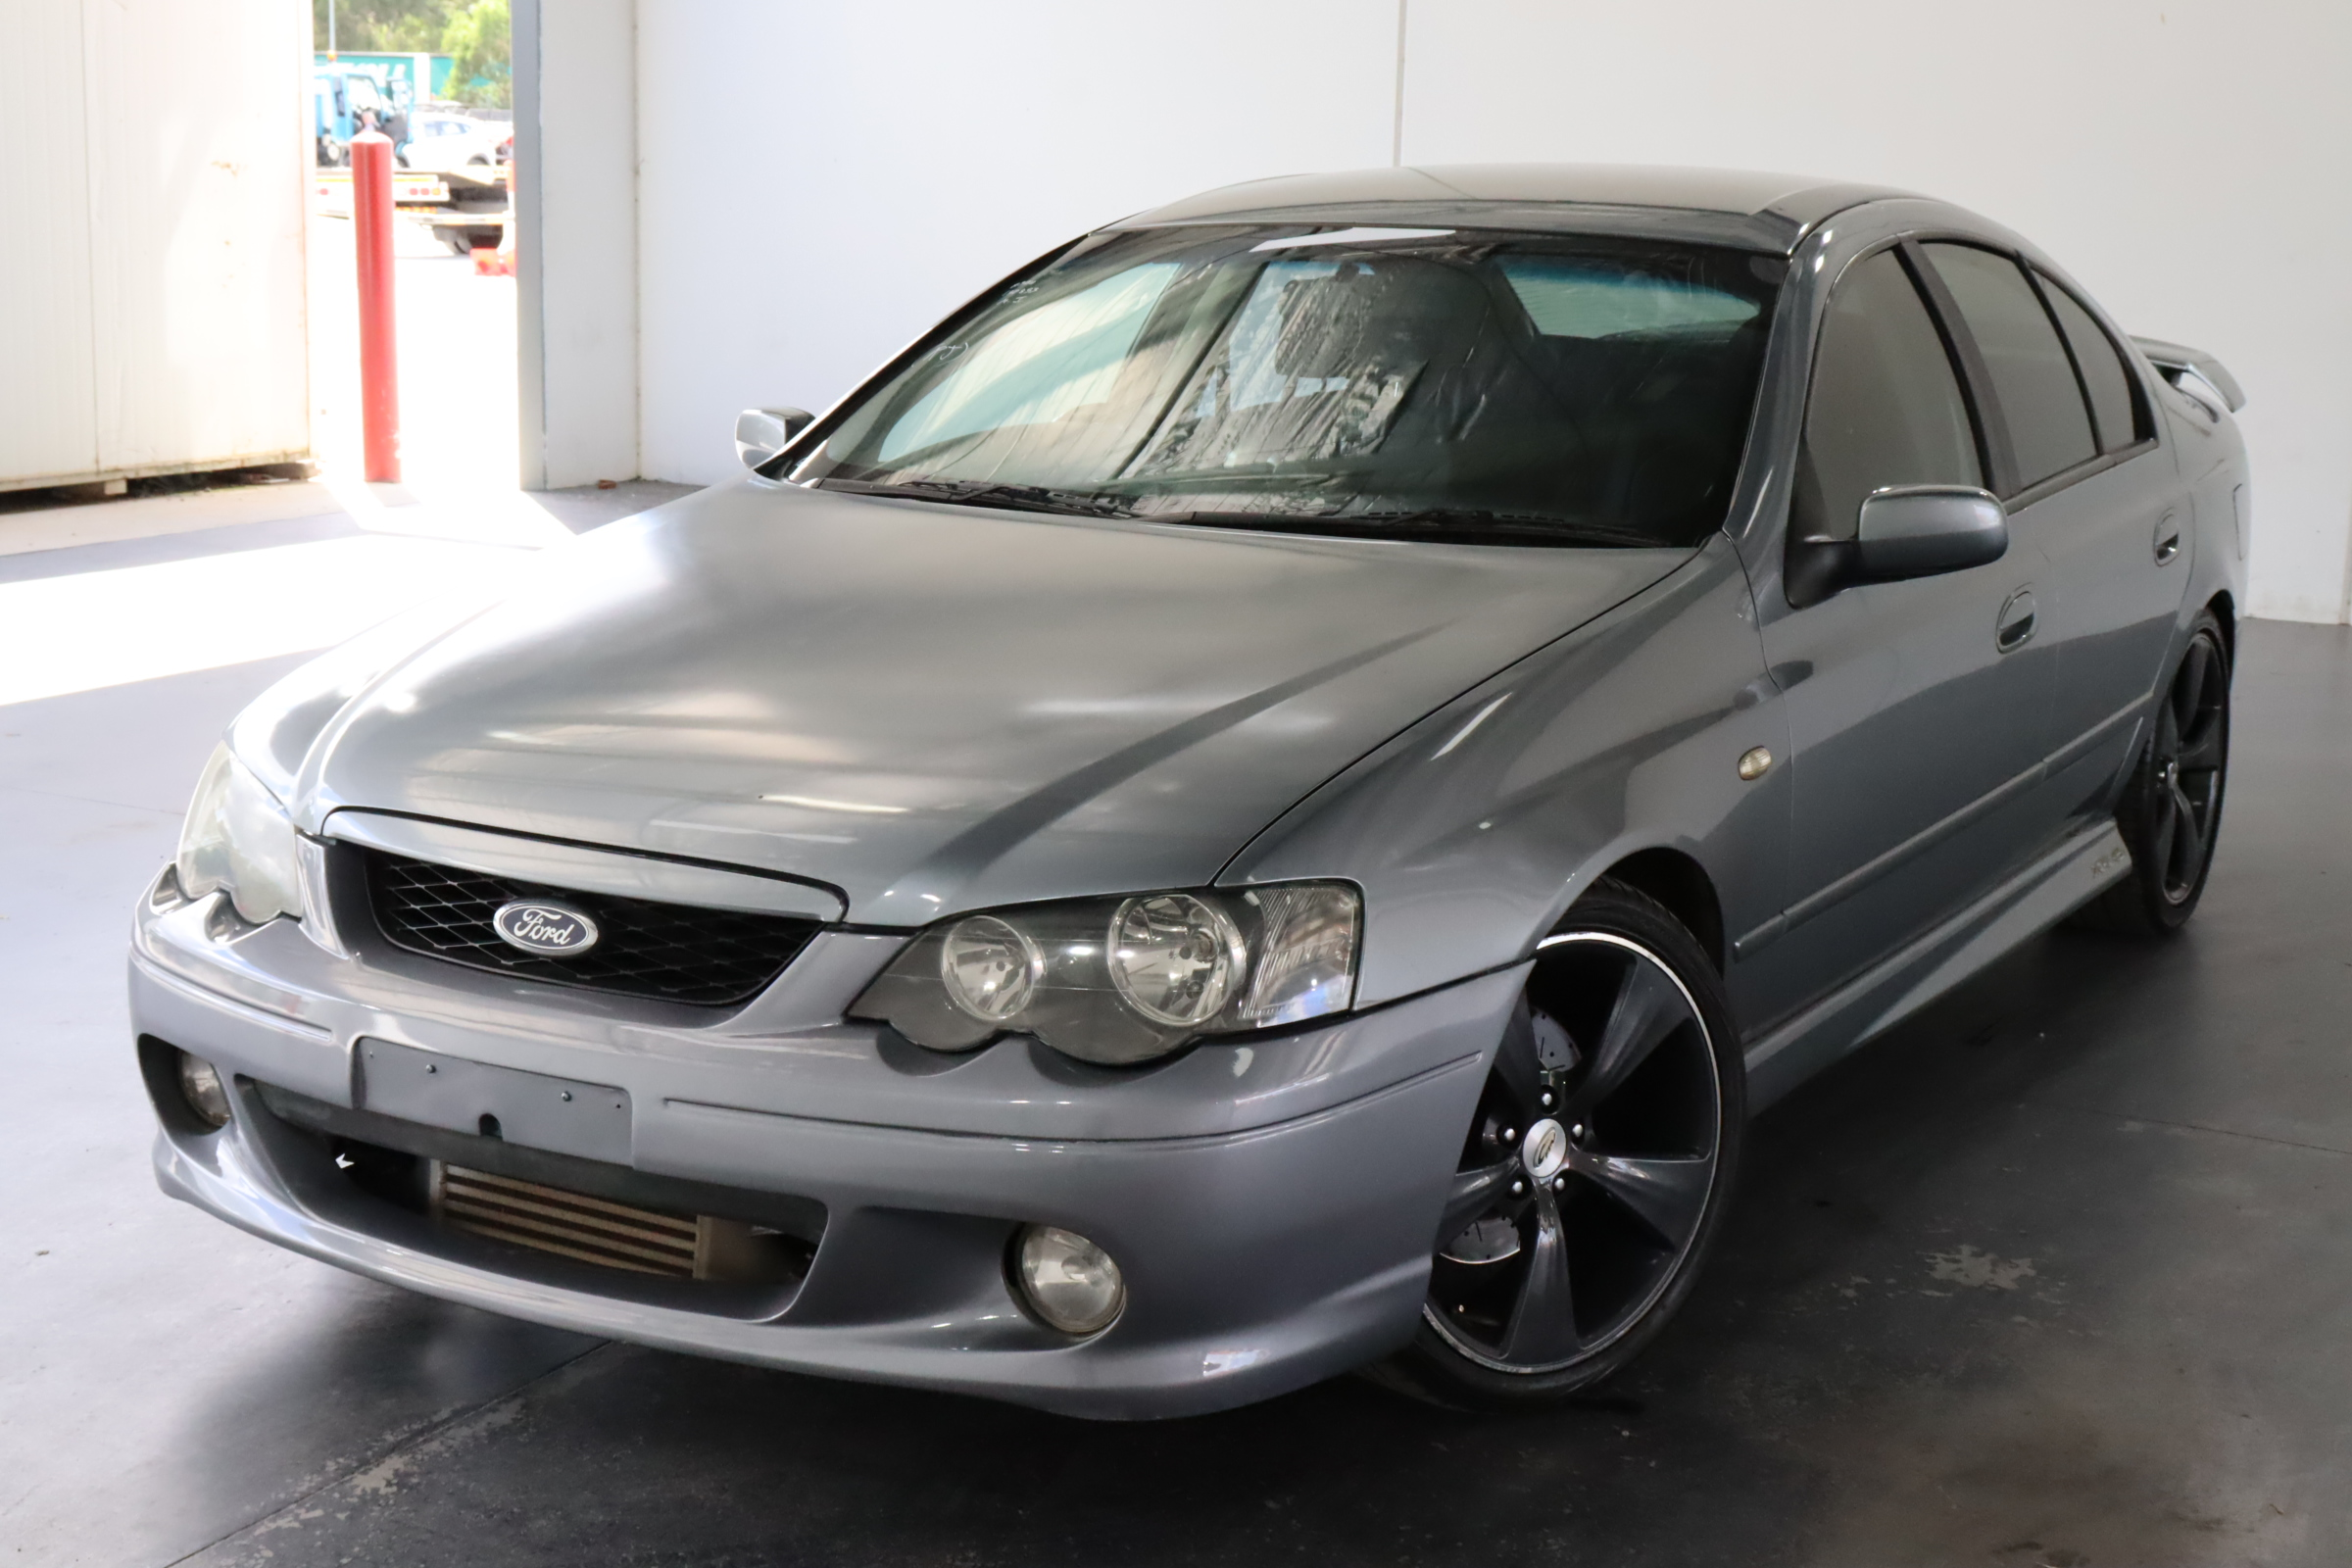 2005 Ford Falcon XR6T Turbo BA MKII Automatic Sedan